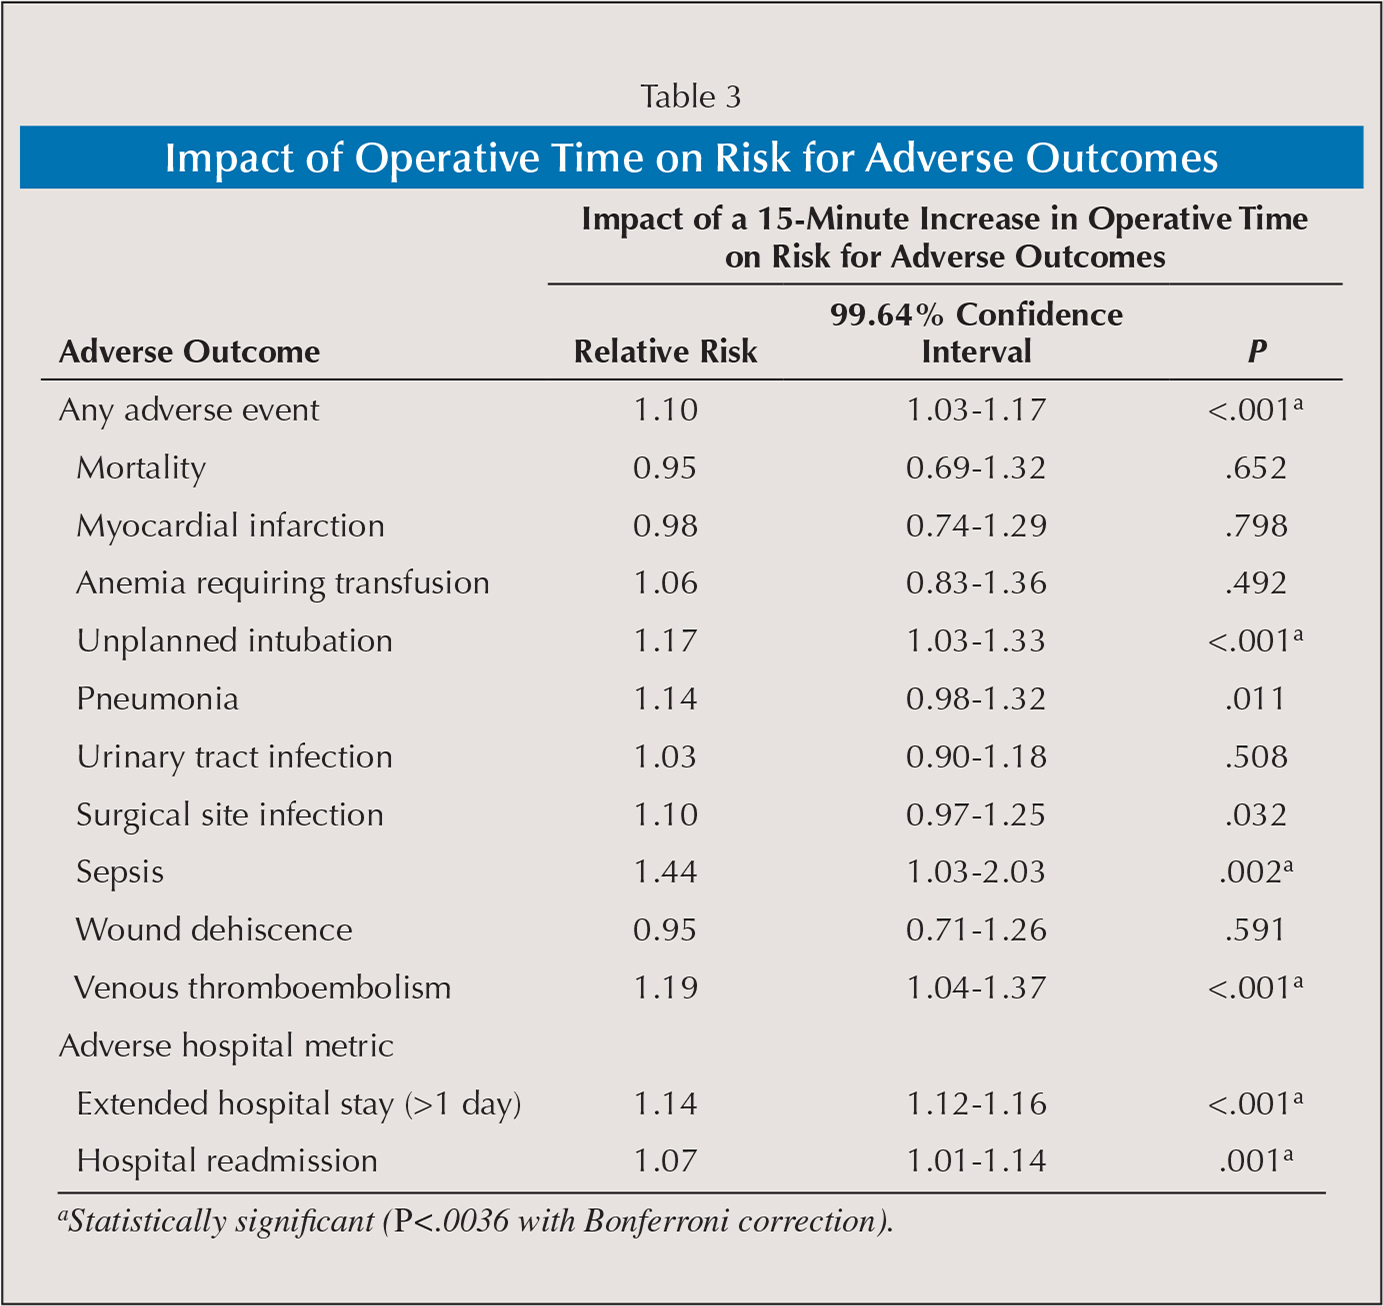 Impact of Operative Time on Risk for Adverse Outcomes